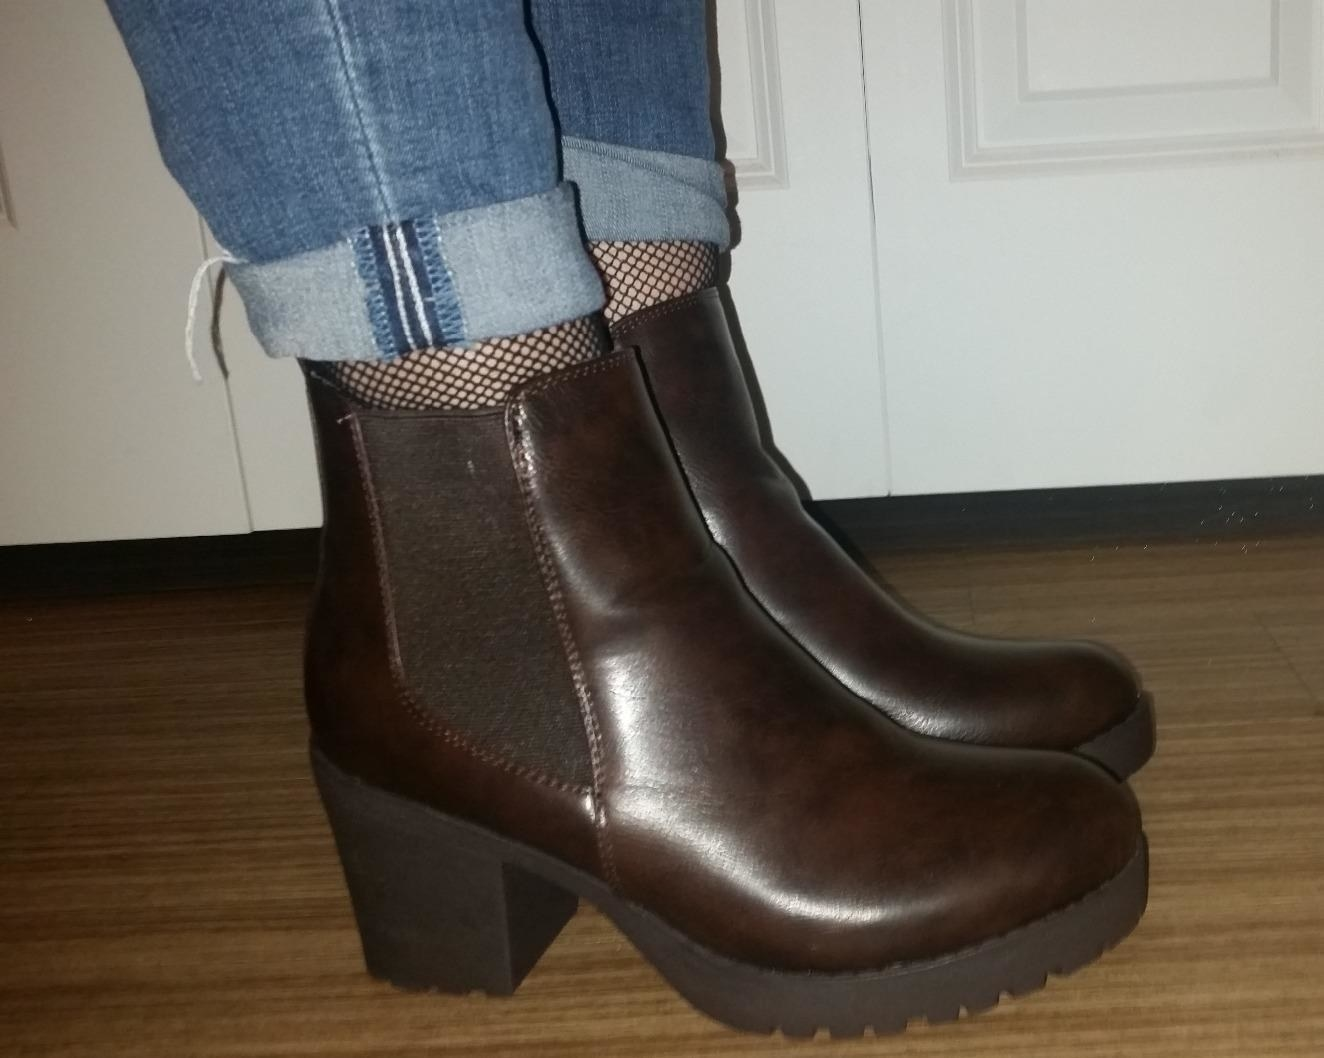 Reviewer wearing brown boots